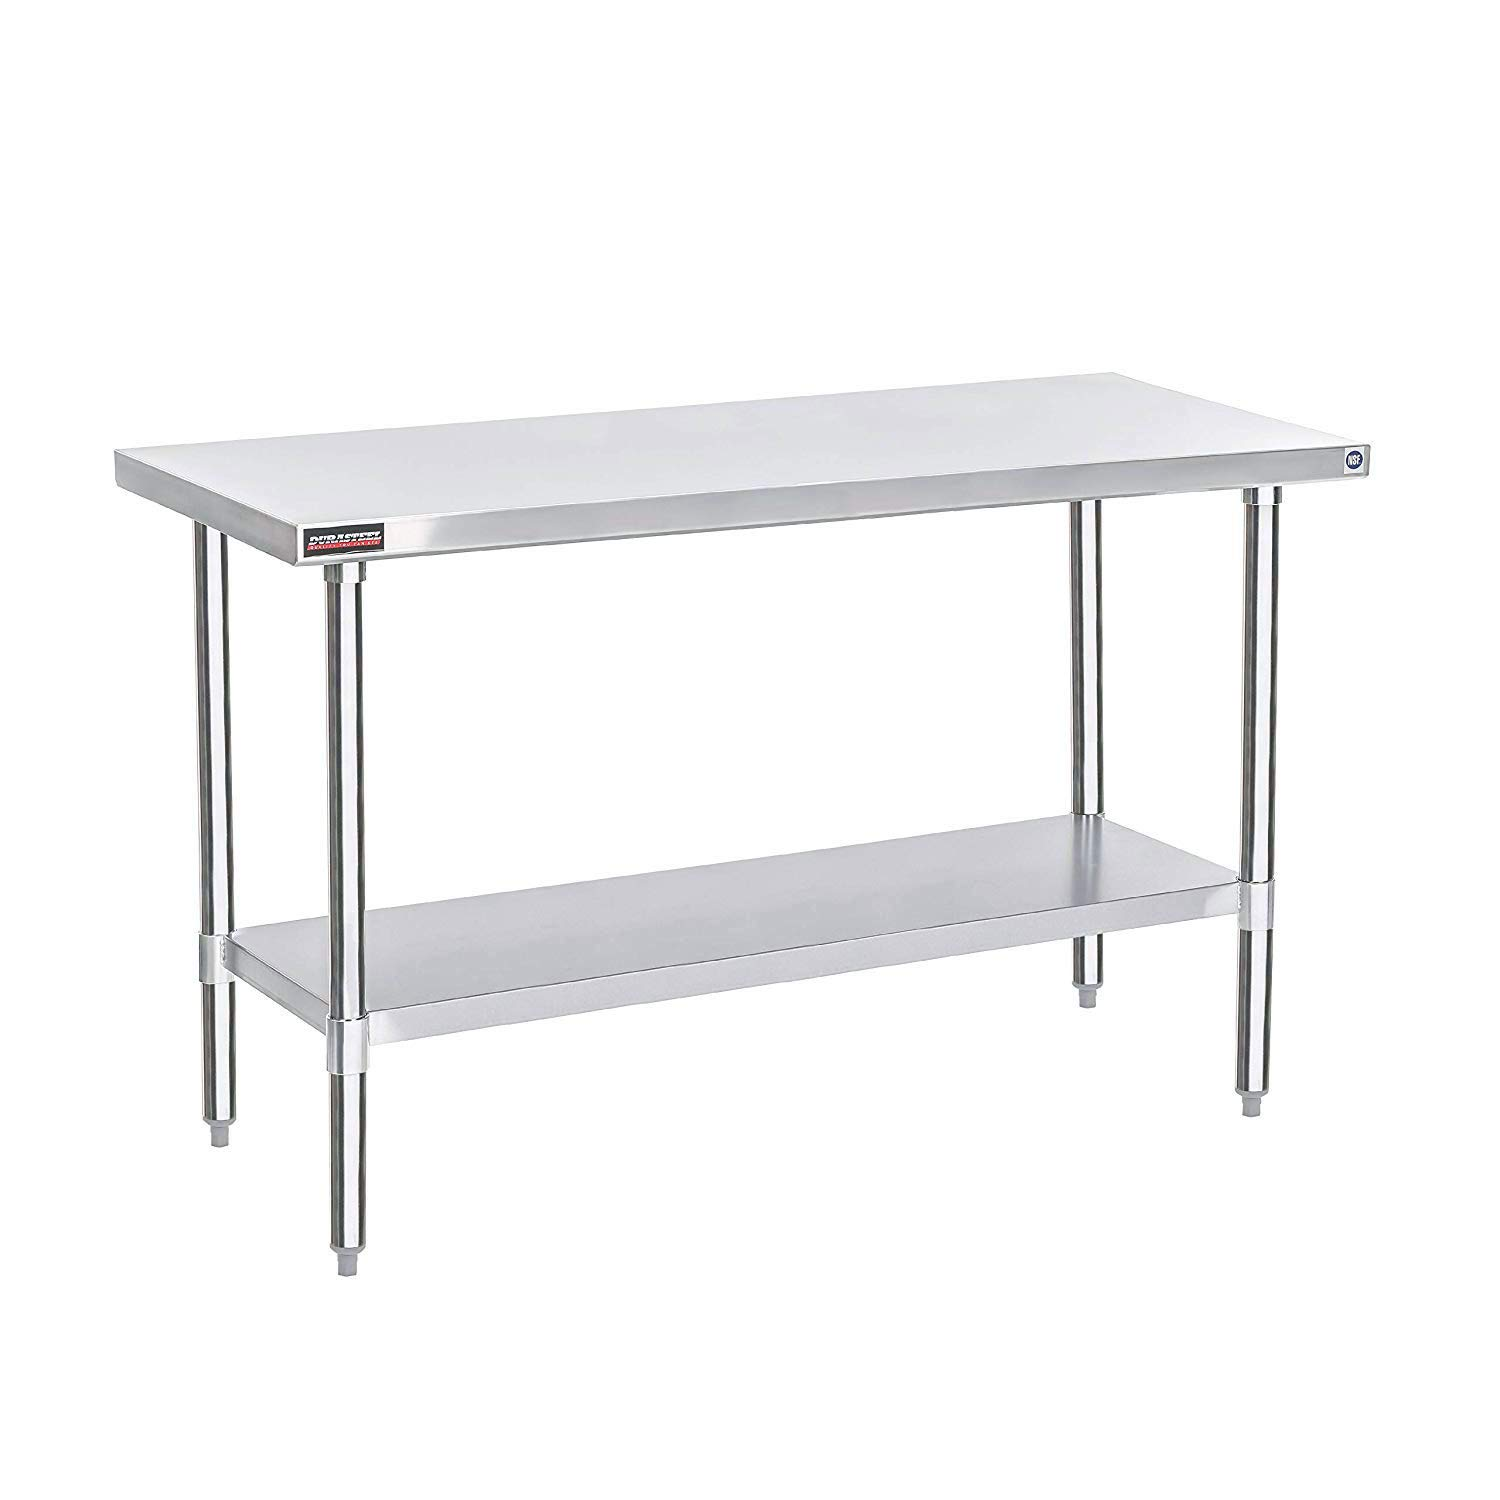 DuraSteel Stainless Steel Work Table 30'' x 72'' x 34'' Height - Food Prep Commercial Grade Worktable - NSF Certified - Fits for use in Restaurant, Business, Warehouse, Home, Kitchen, Garage